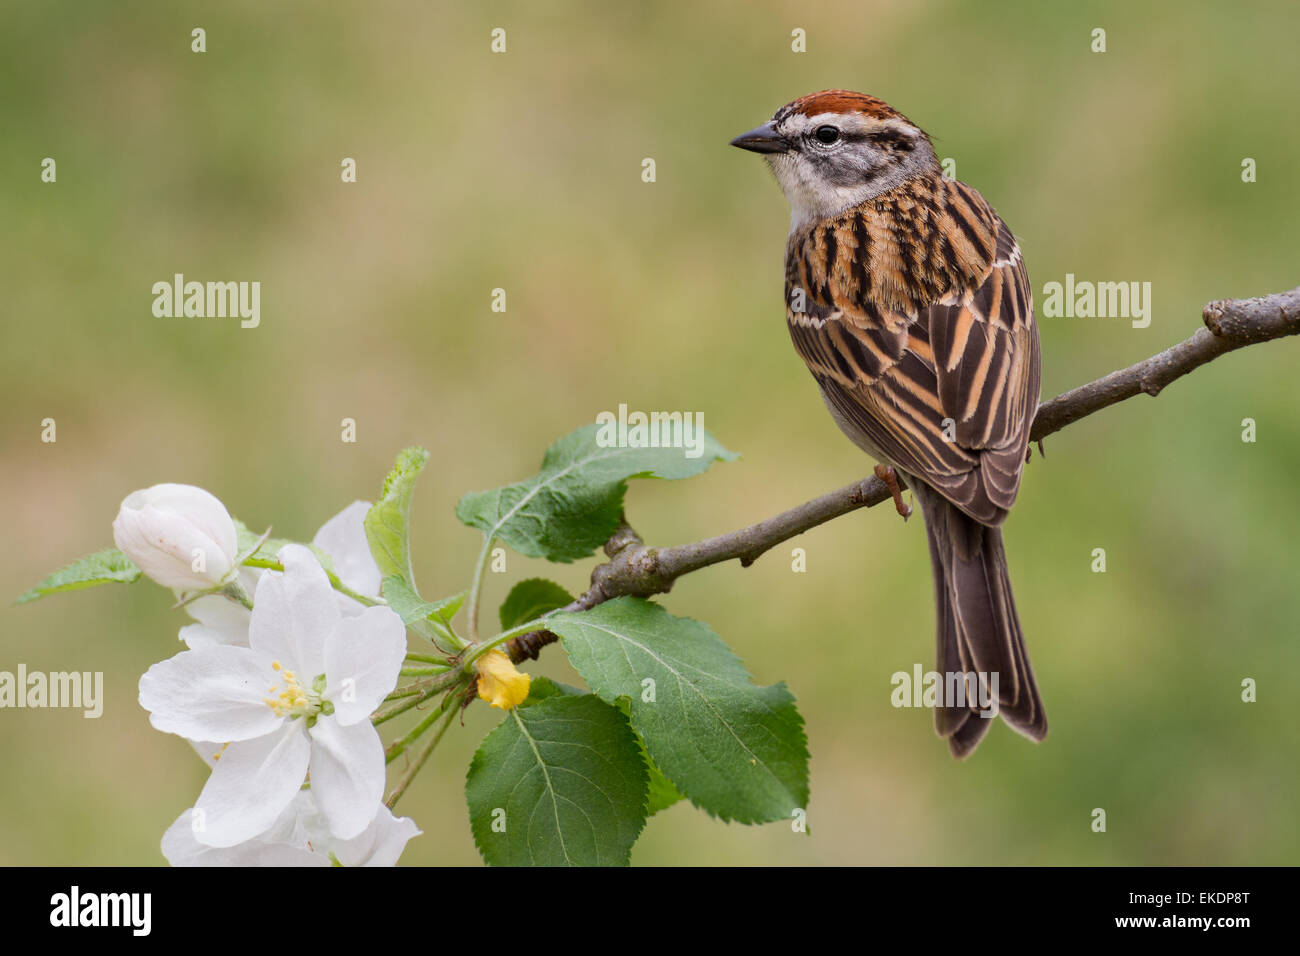 A chipping sparrow perched on a pear branch. - Stock Image